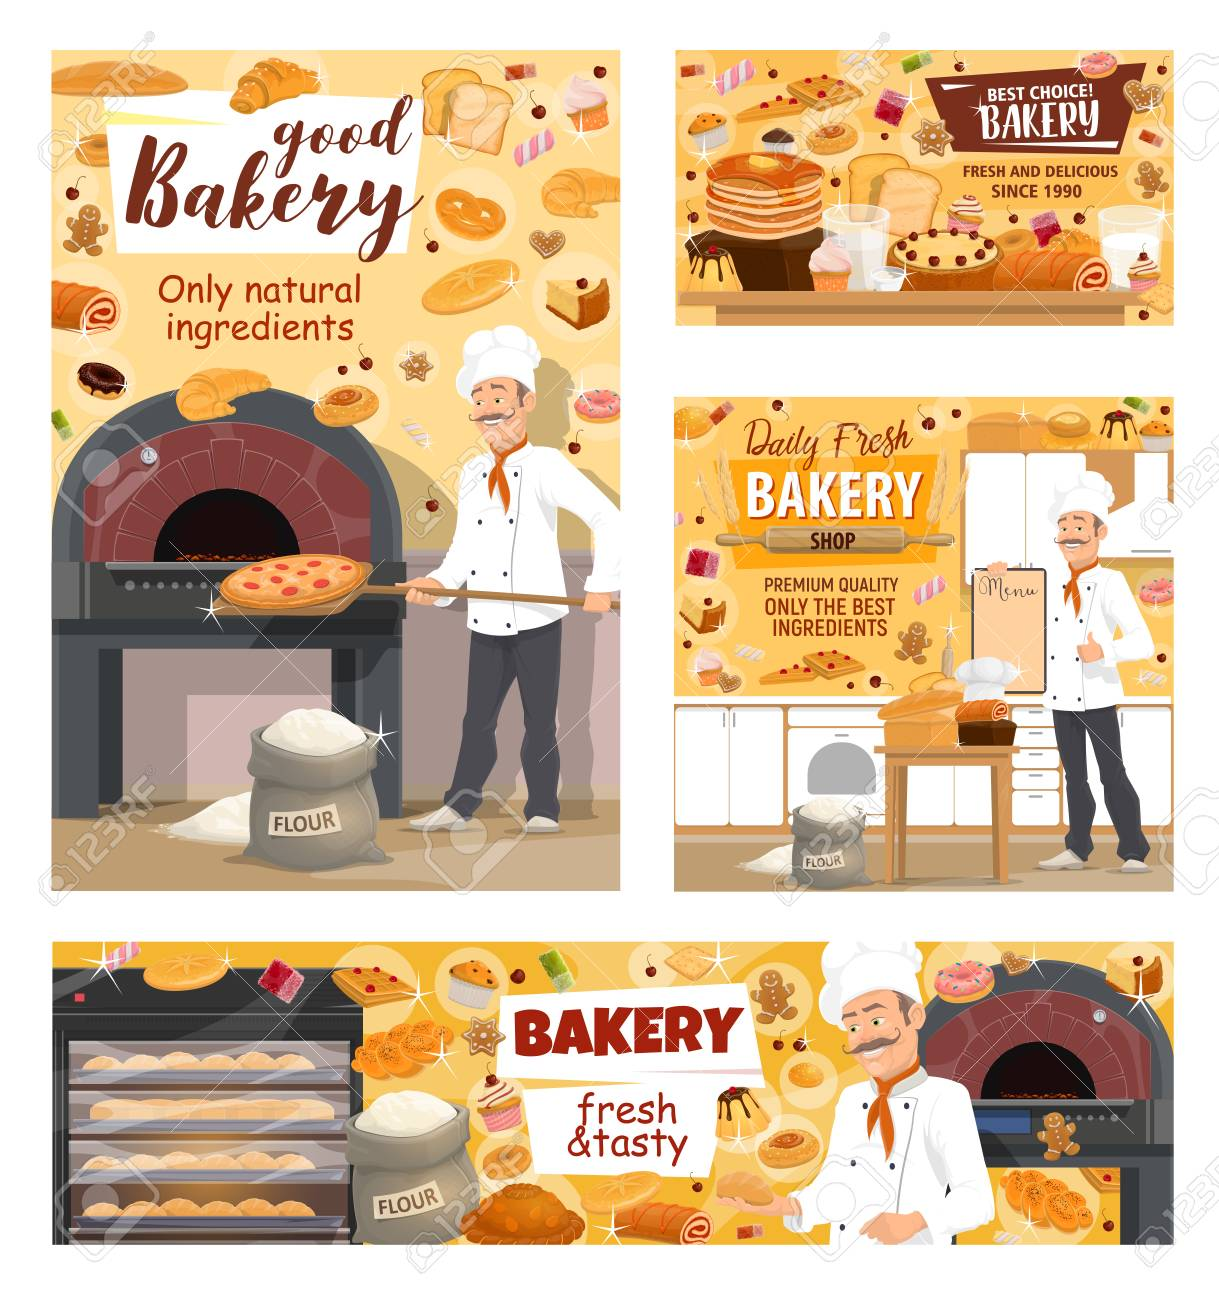 Baker baking bread, pizza and pastry cakes in bakery shop  Vector